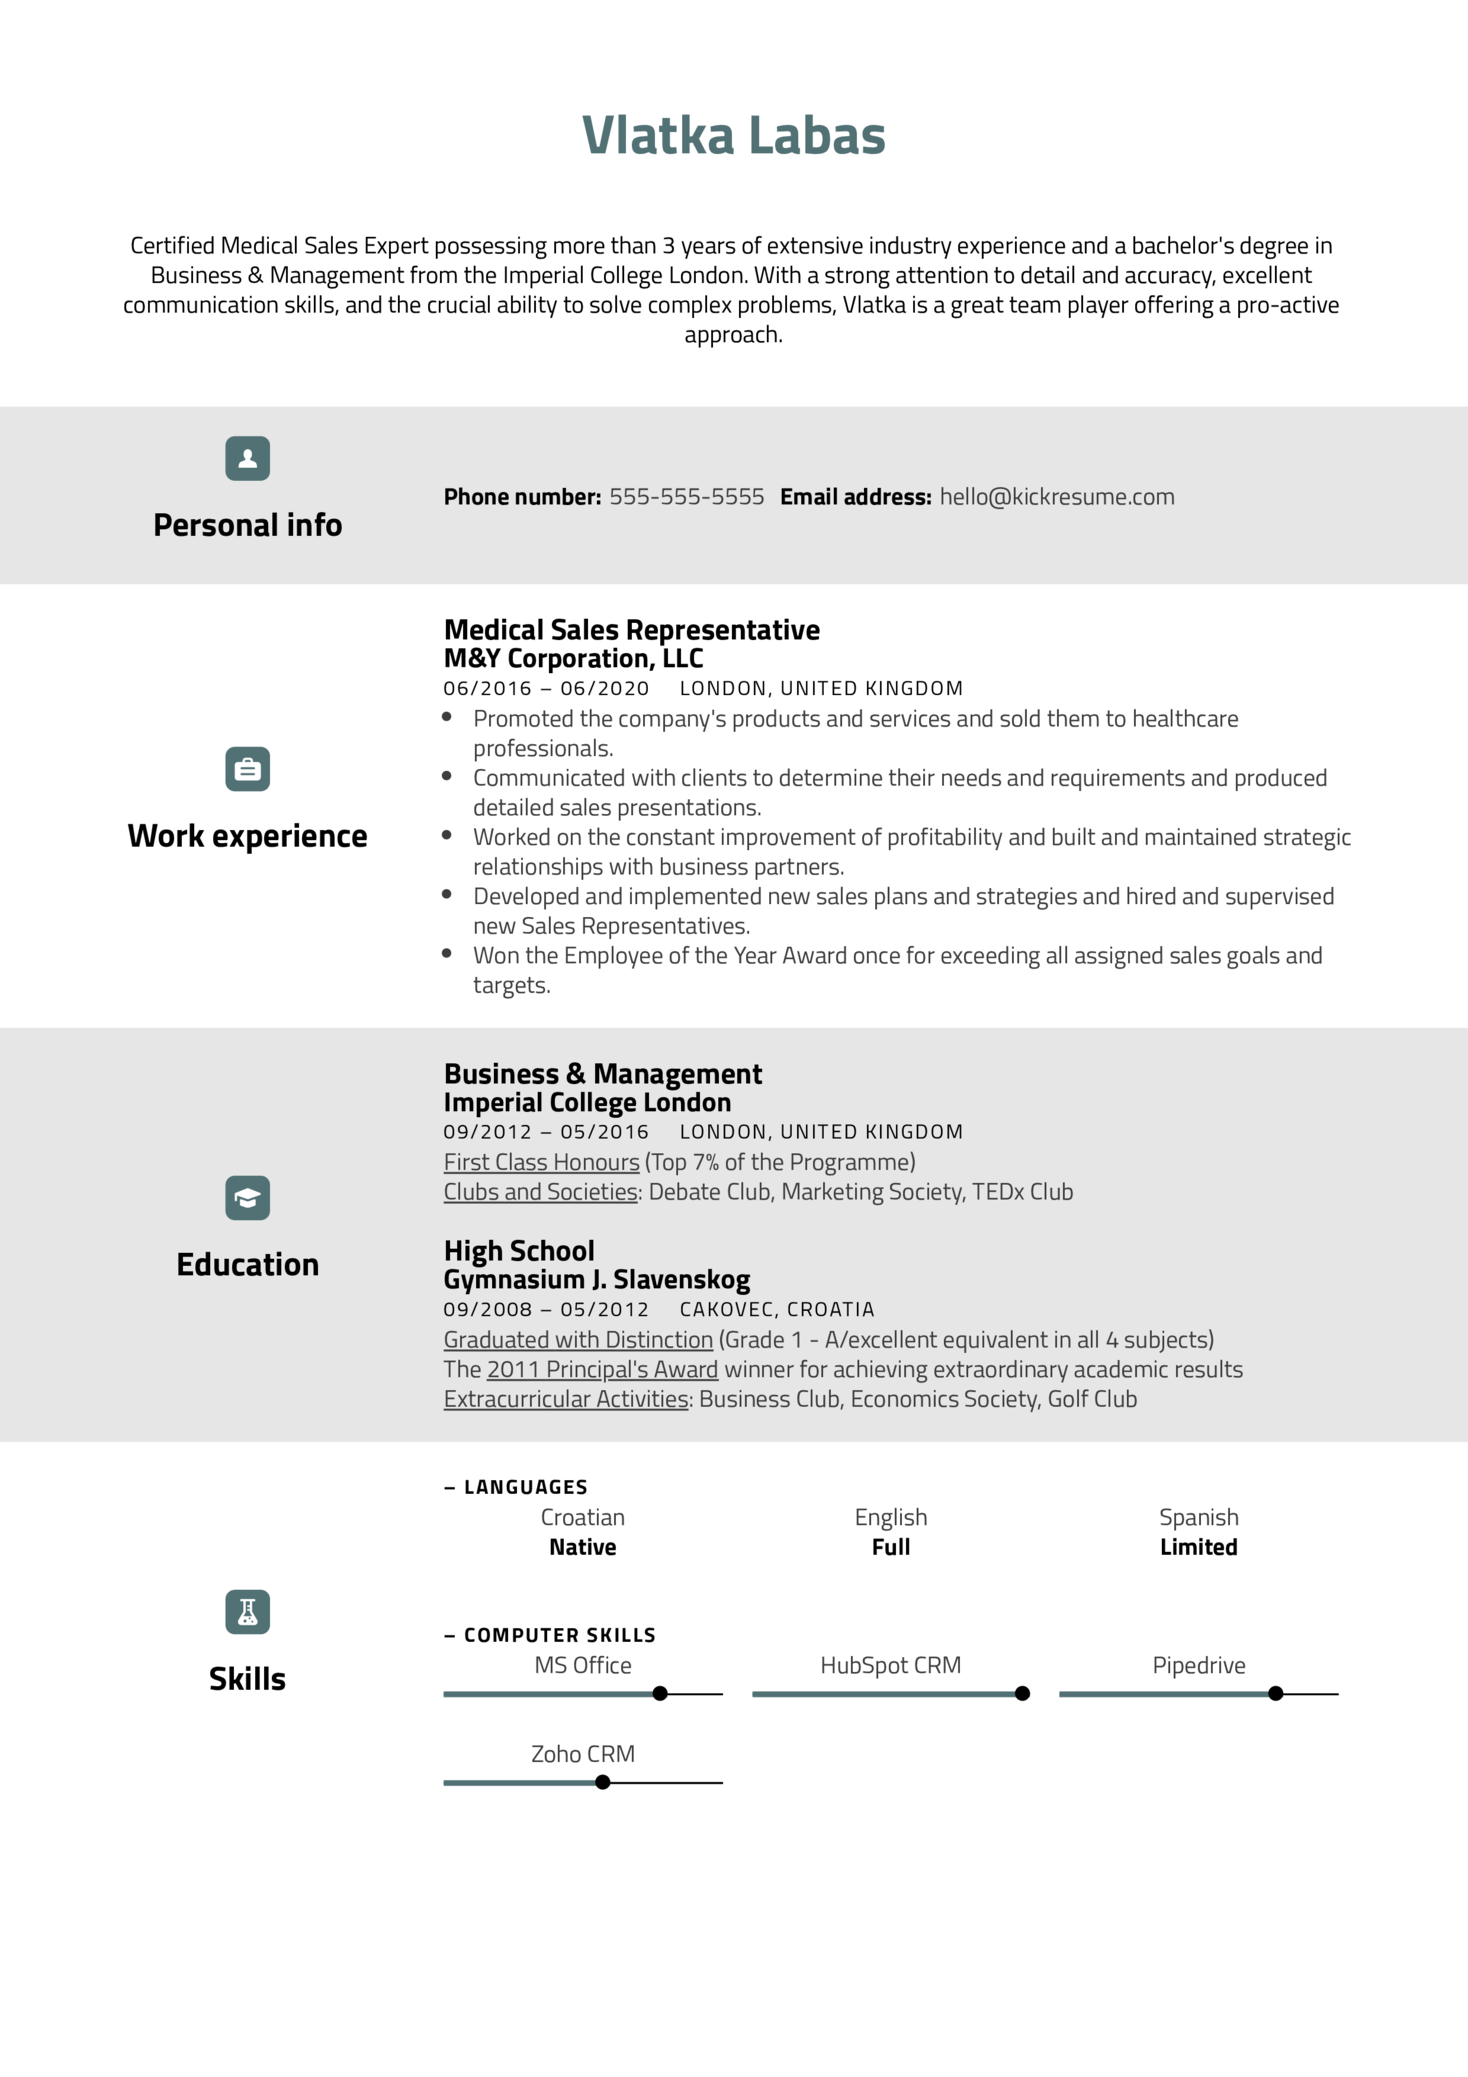 Medical Sales Representative Resume Sample (Parte 1)